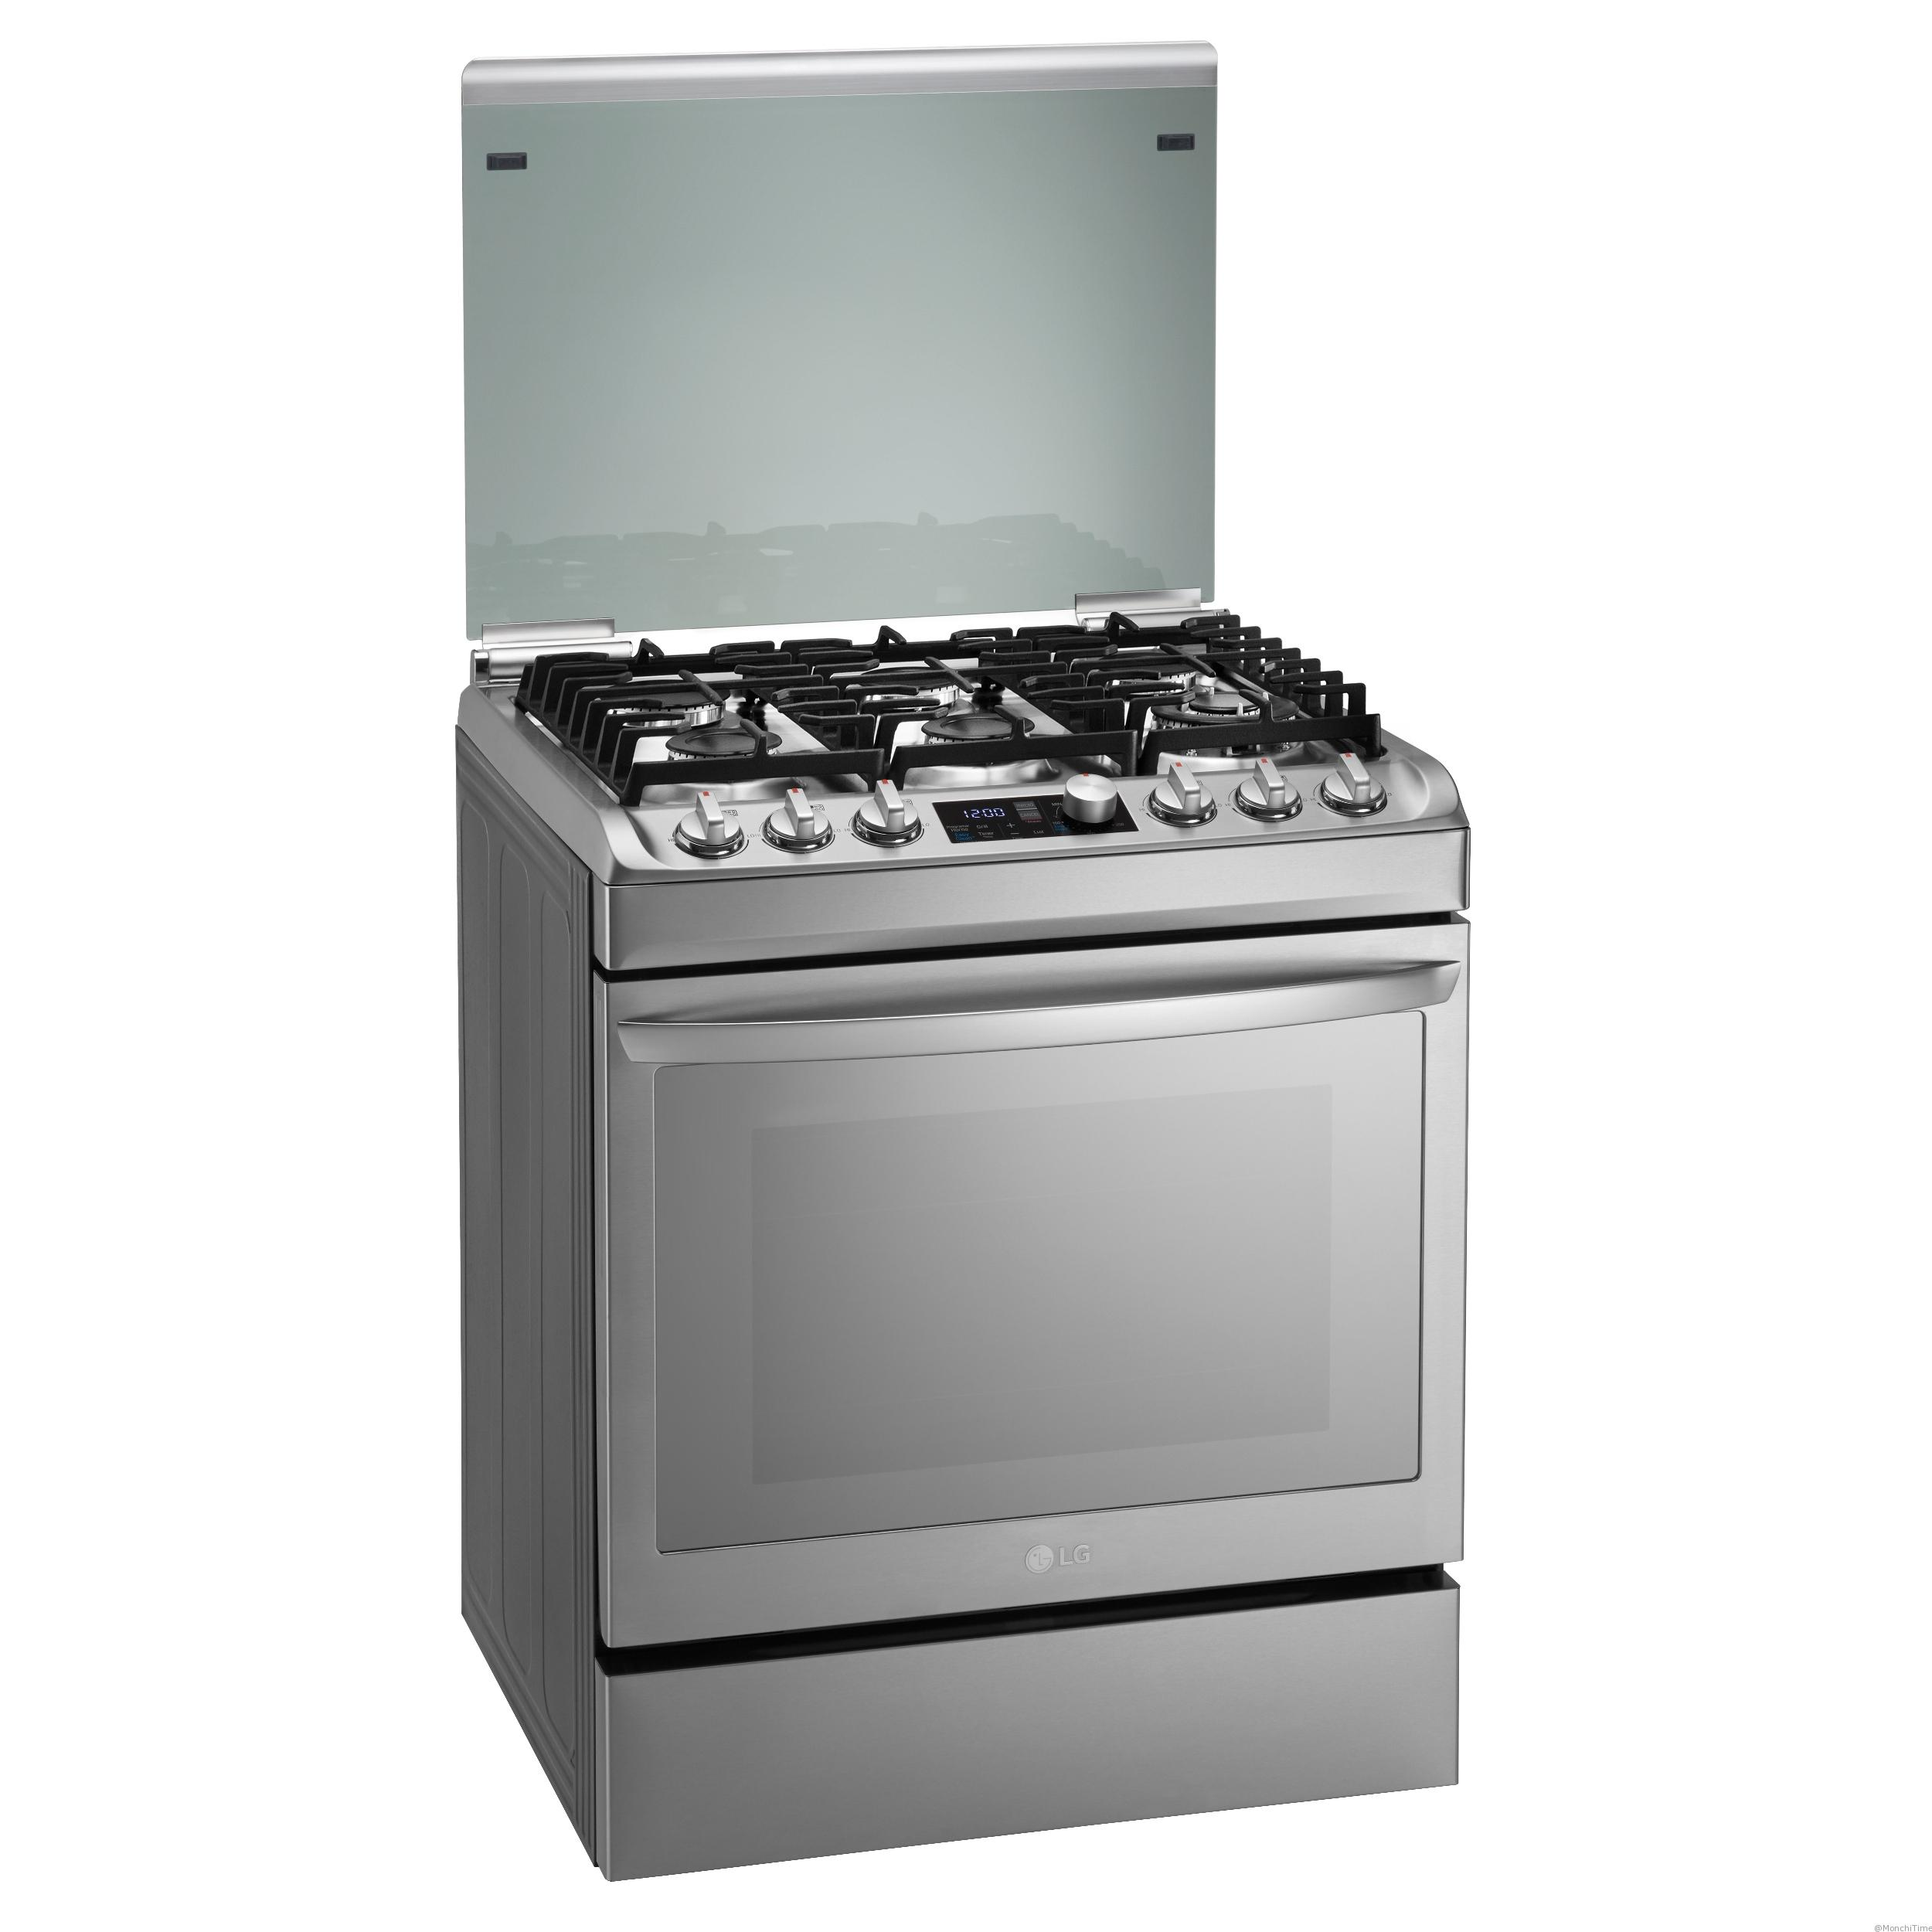 3. New Gas Oven_left side